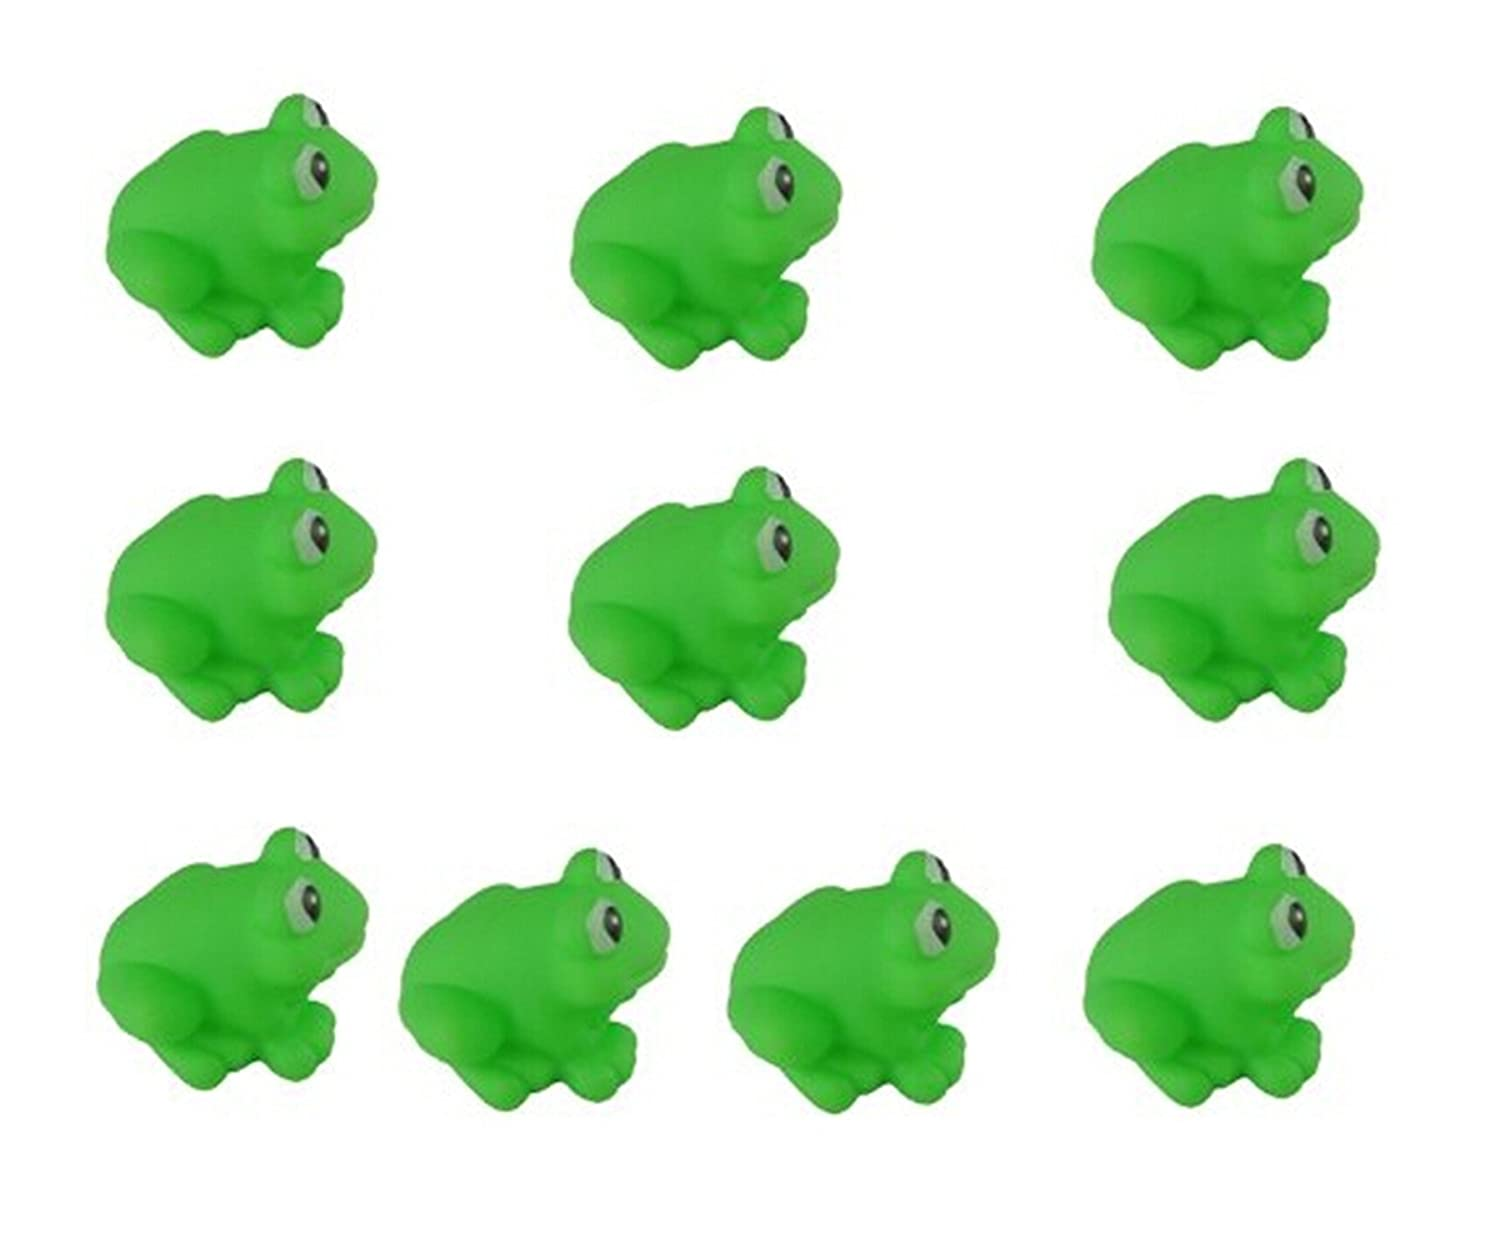 KingWinX Funny Baby Rubber Bathtub Toys, Pack of 10 pcs Frogs Top Element